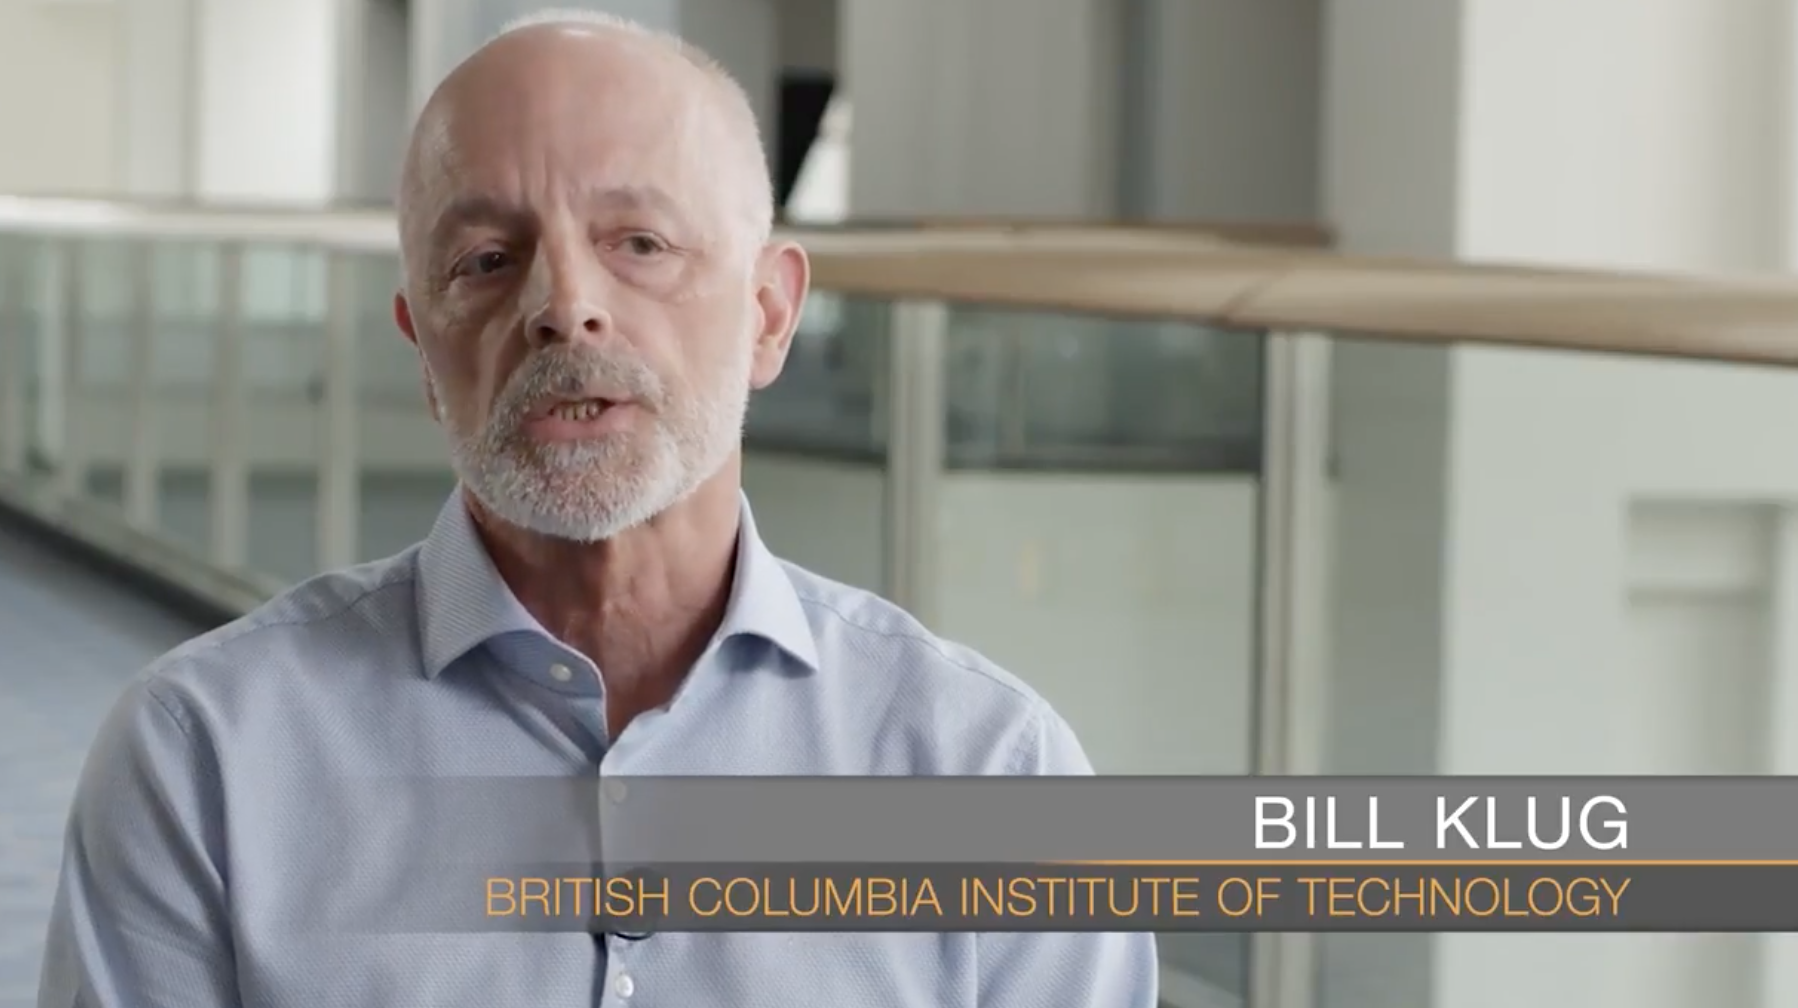 BCIT Equips Students with Cloud Computing Skills with AWS Educate